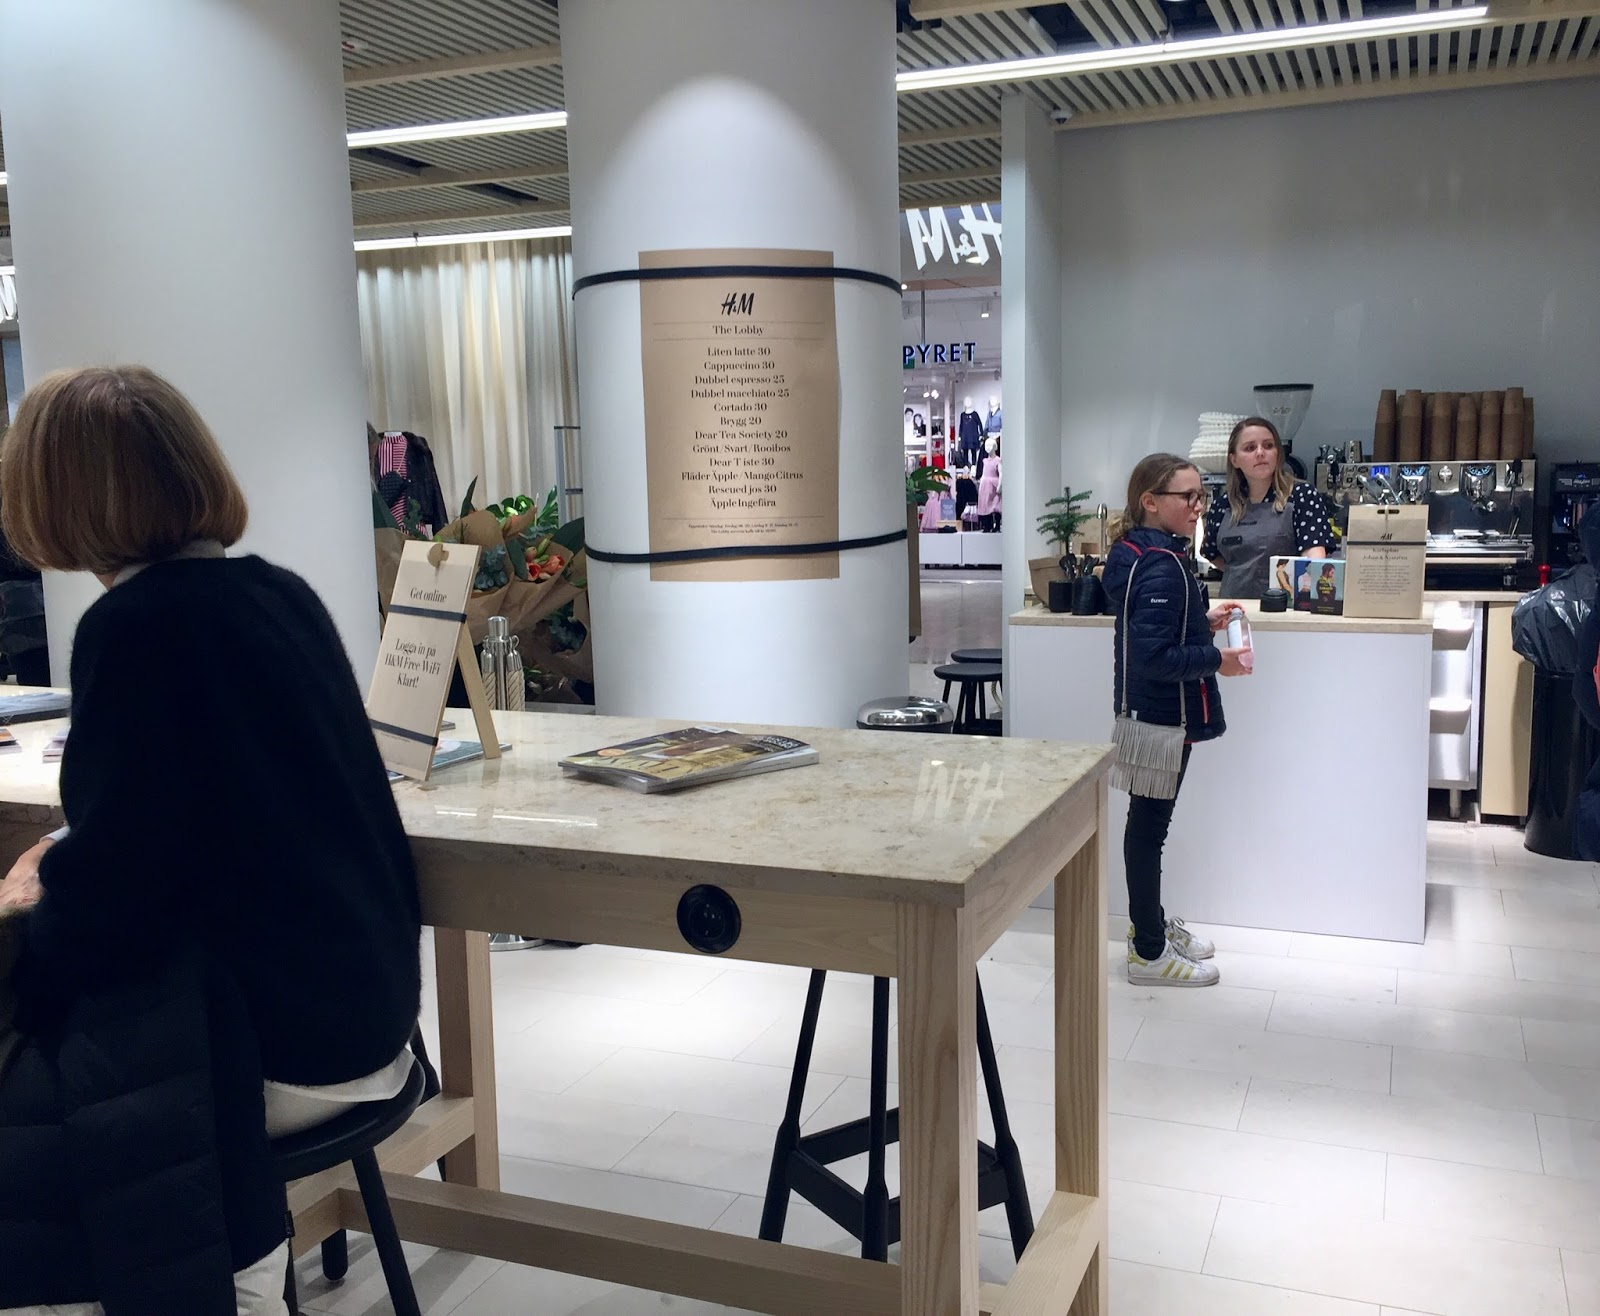 H&M in Estonia! H&M in Estonia! One of a kind glasses. Estonian designer Karl Annus makes eyeglass frames out of wood. Each pair is handcrafted to suit the client personally.